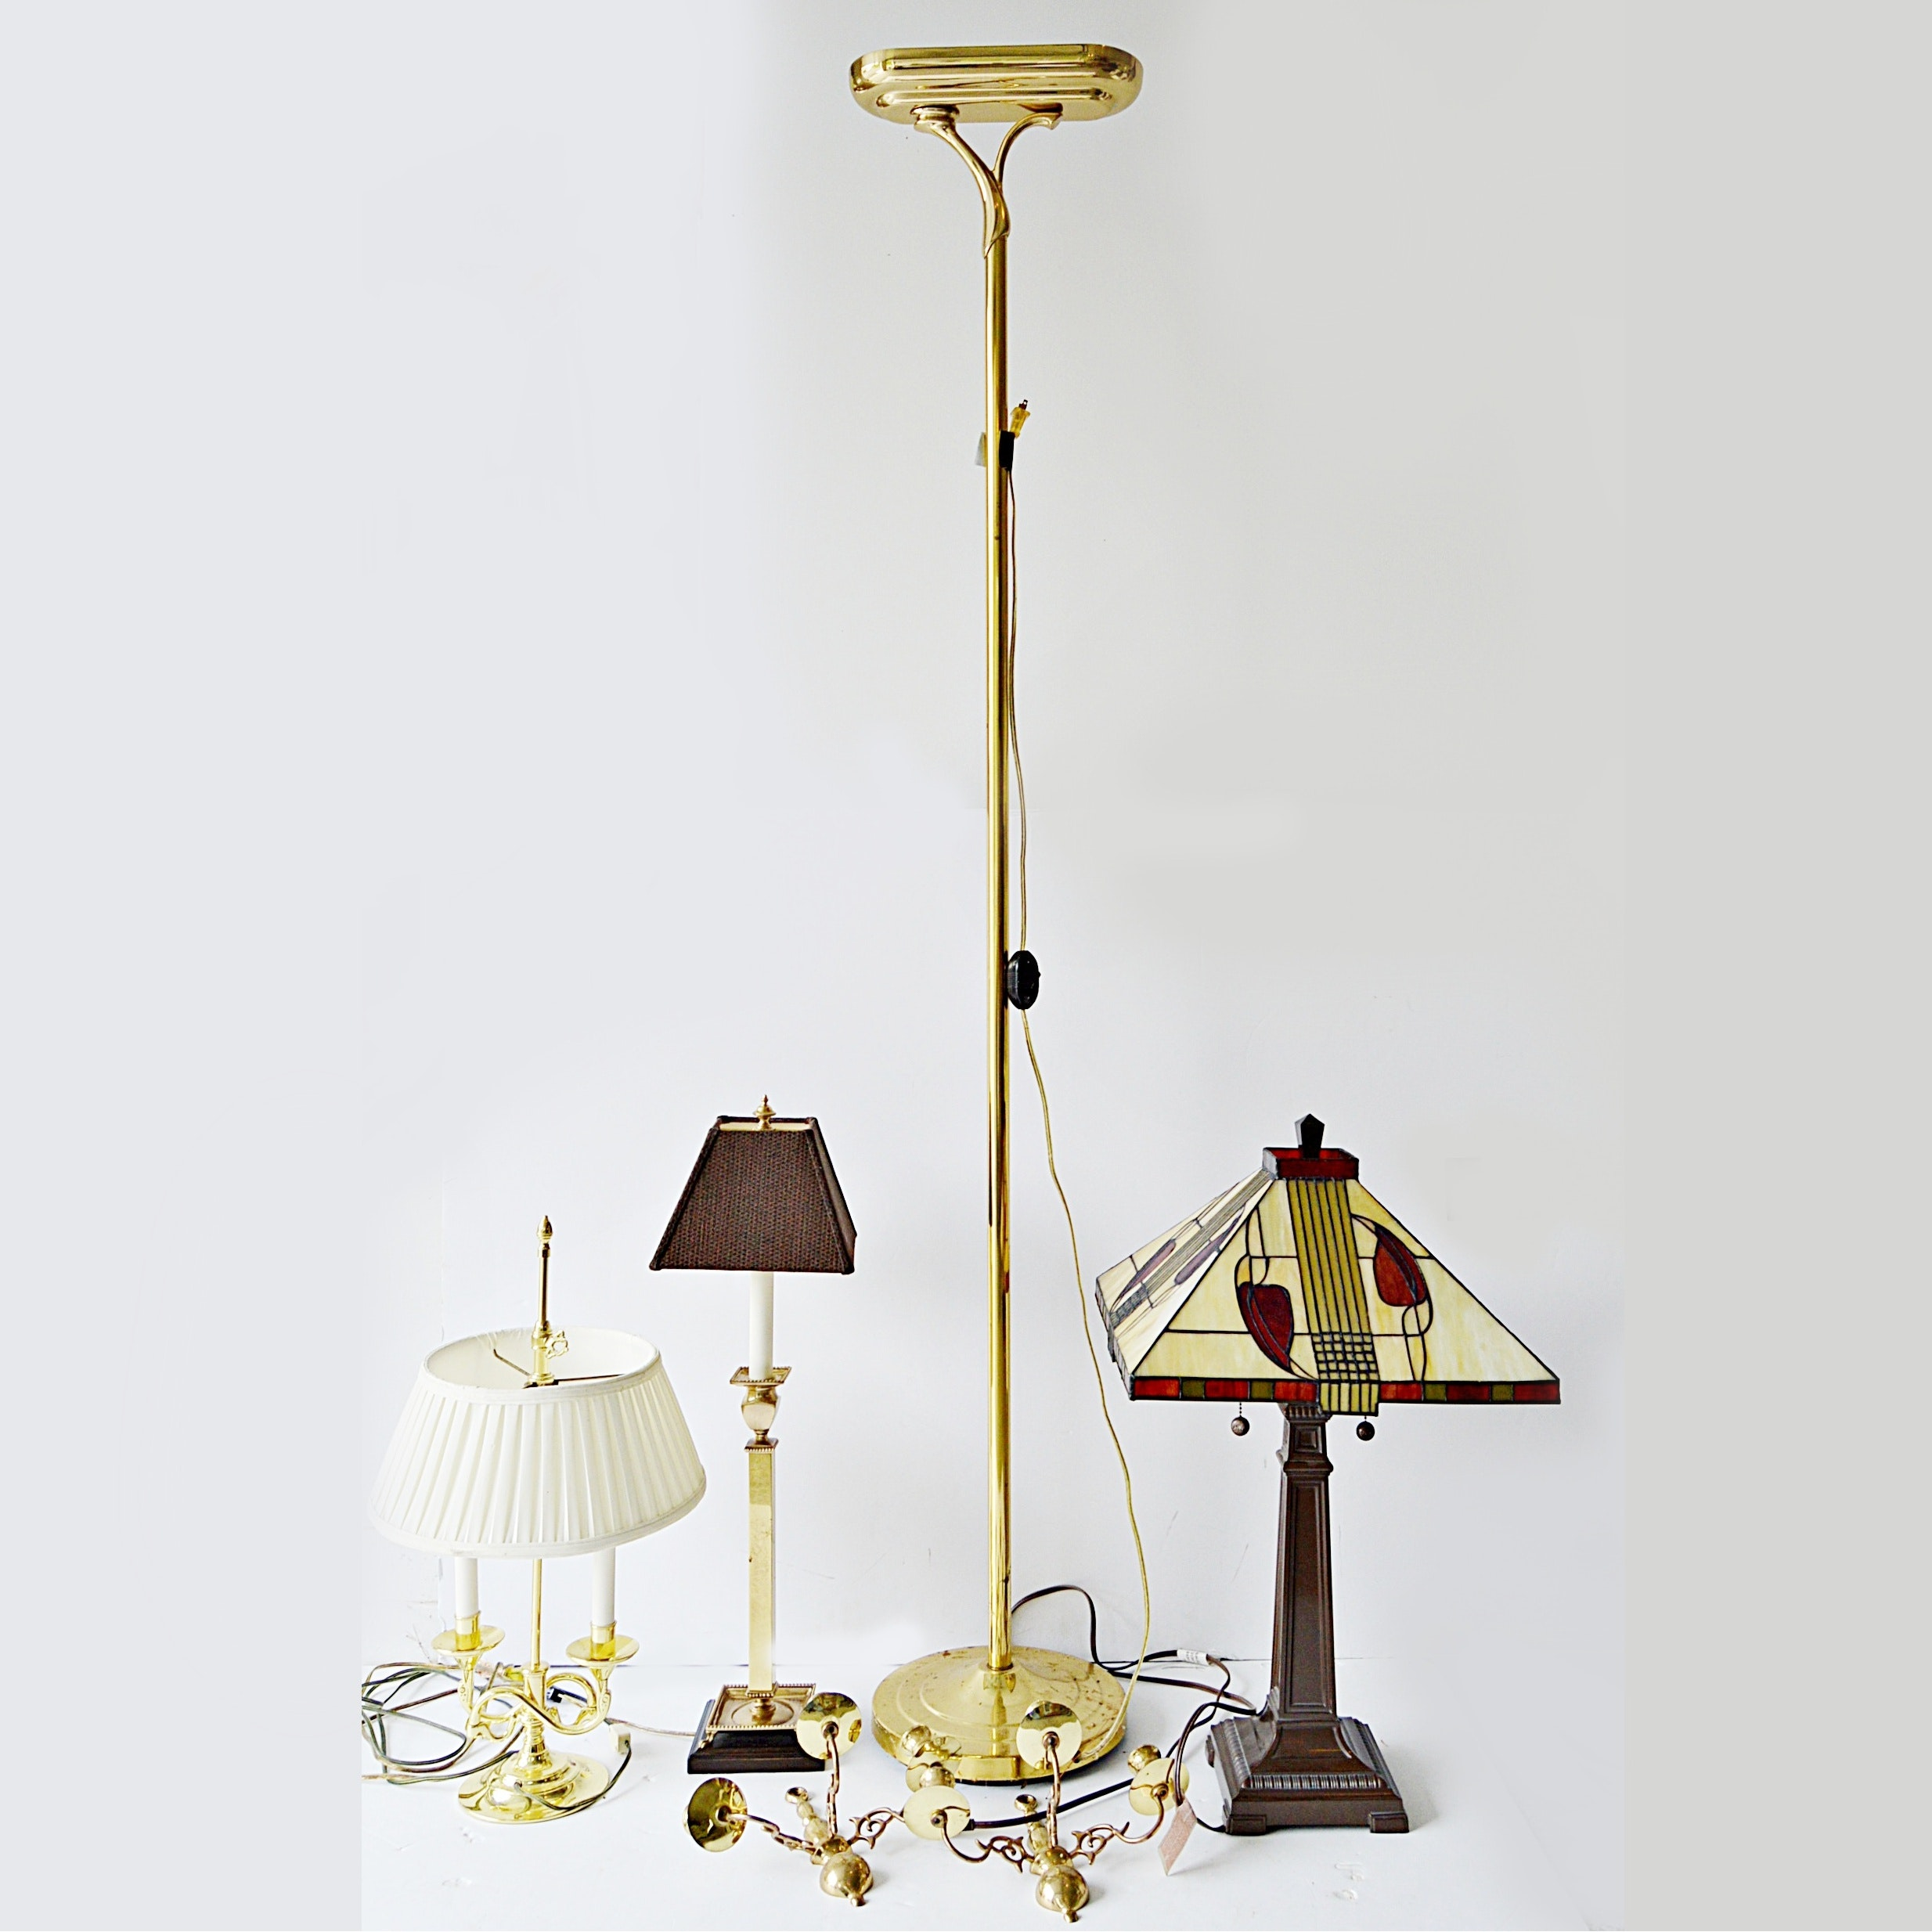 Three Table Lamps with Baldwin, Brass Floor Lamp and Wall Sconces